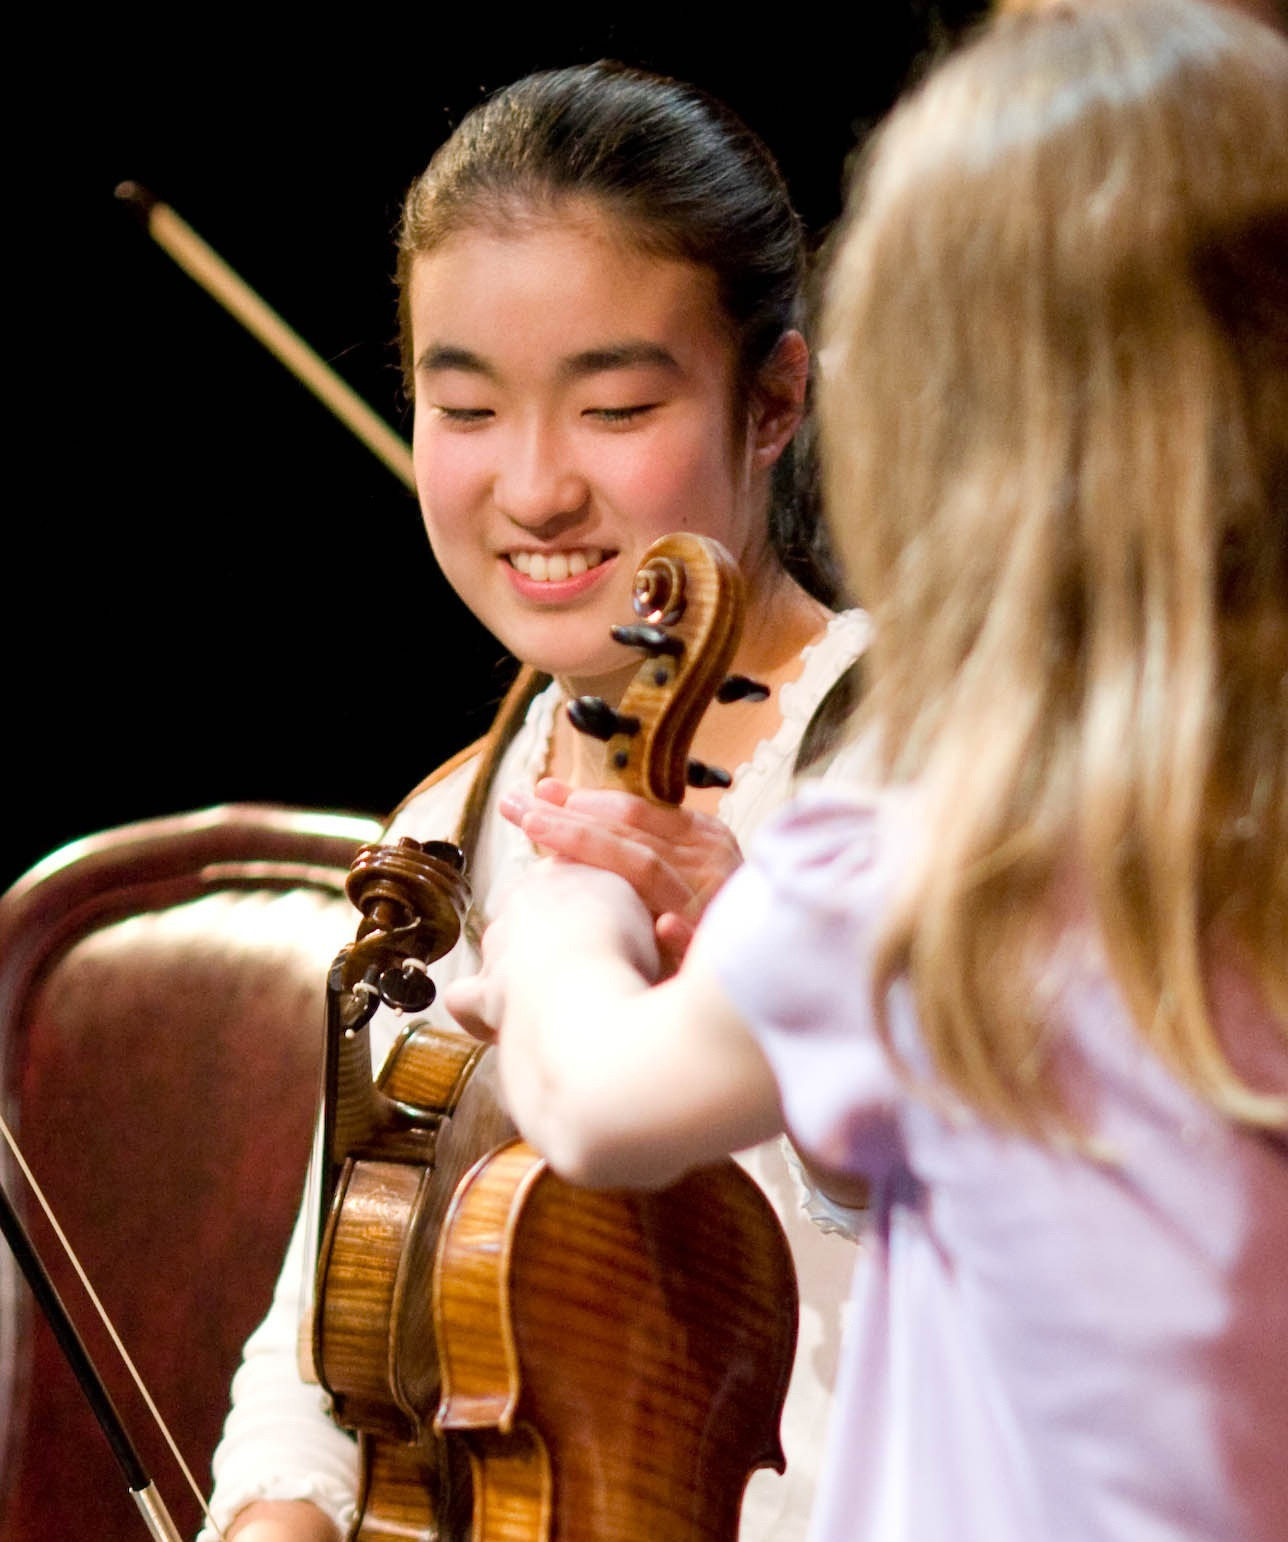 """Youngsters love seeing young people perform, and the Bay Area is rich with wonderful student ensembles that deserve their turn in the spotlight."" -"